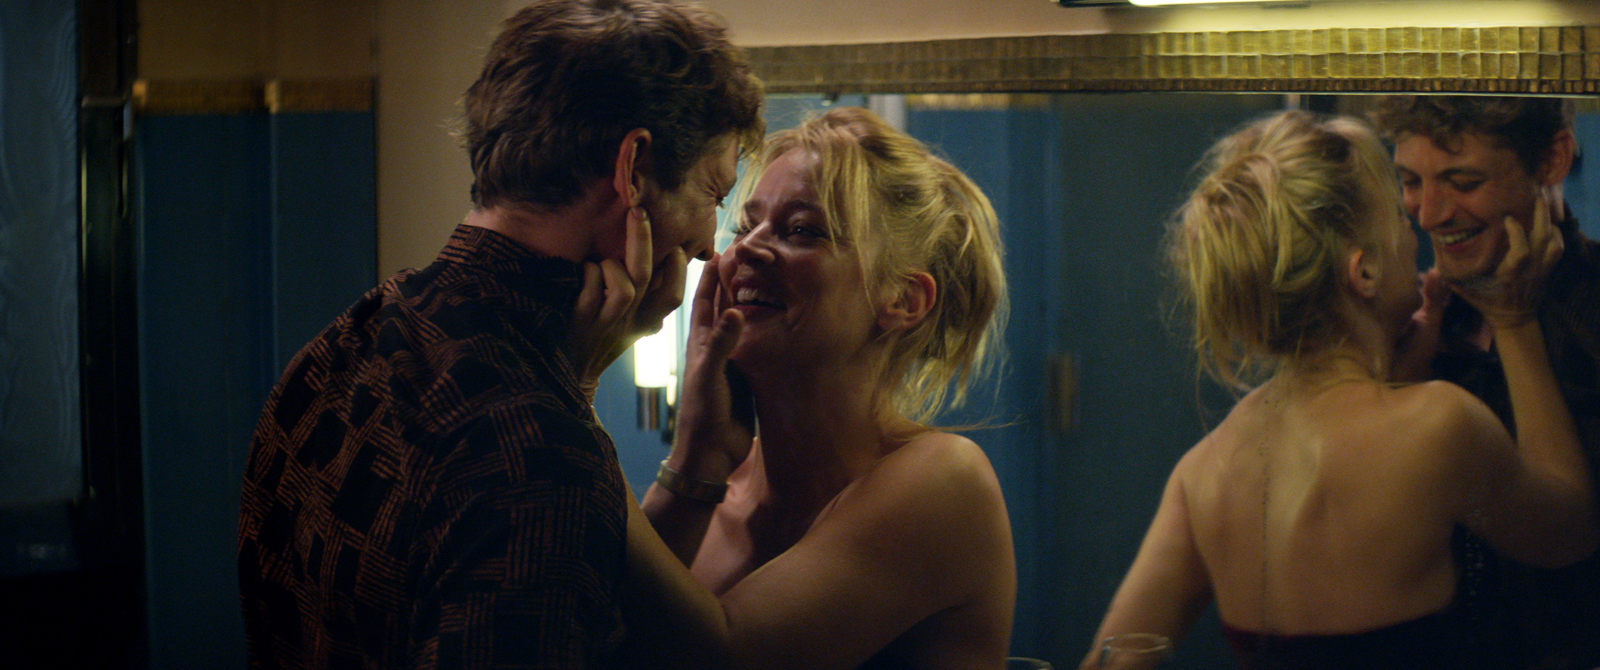 Virginie Efira and Niels Schneider in Sibyl (2019)